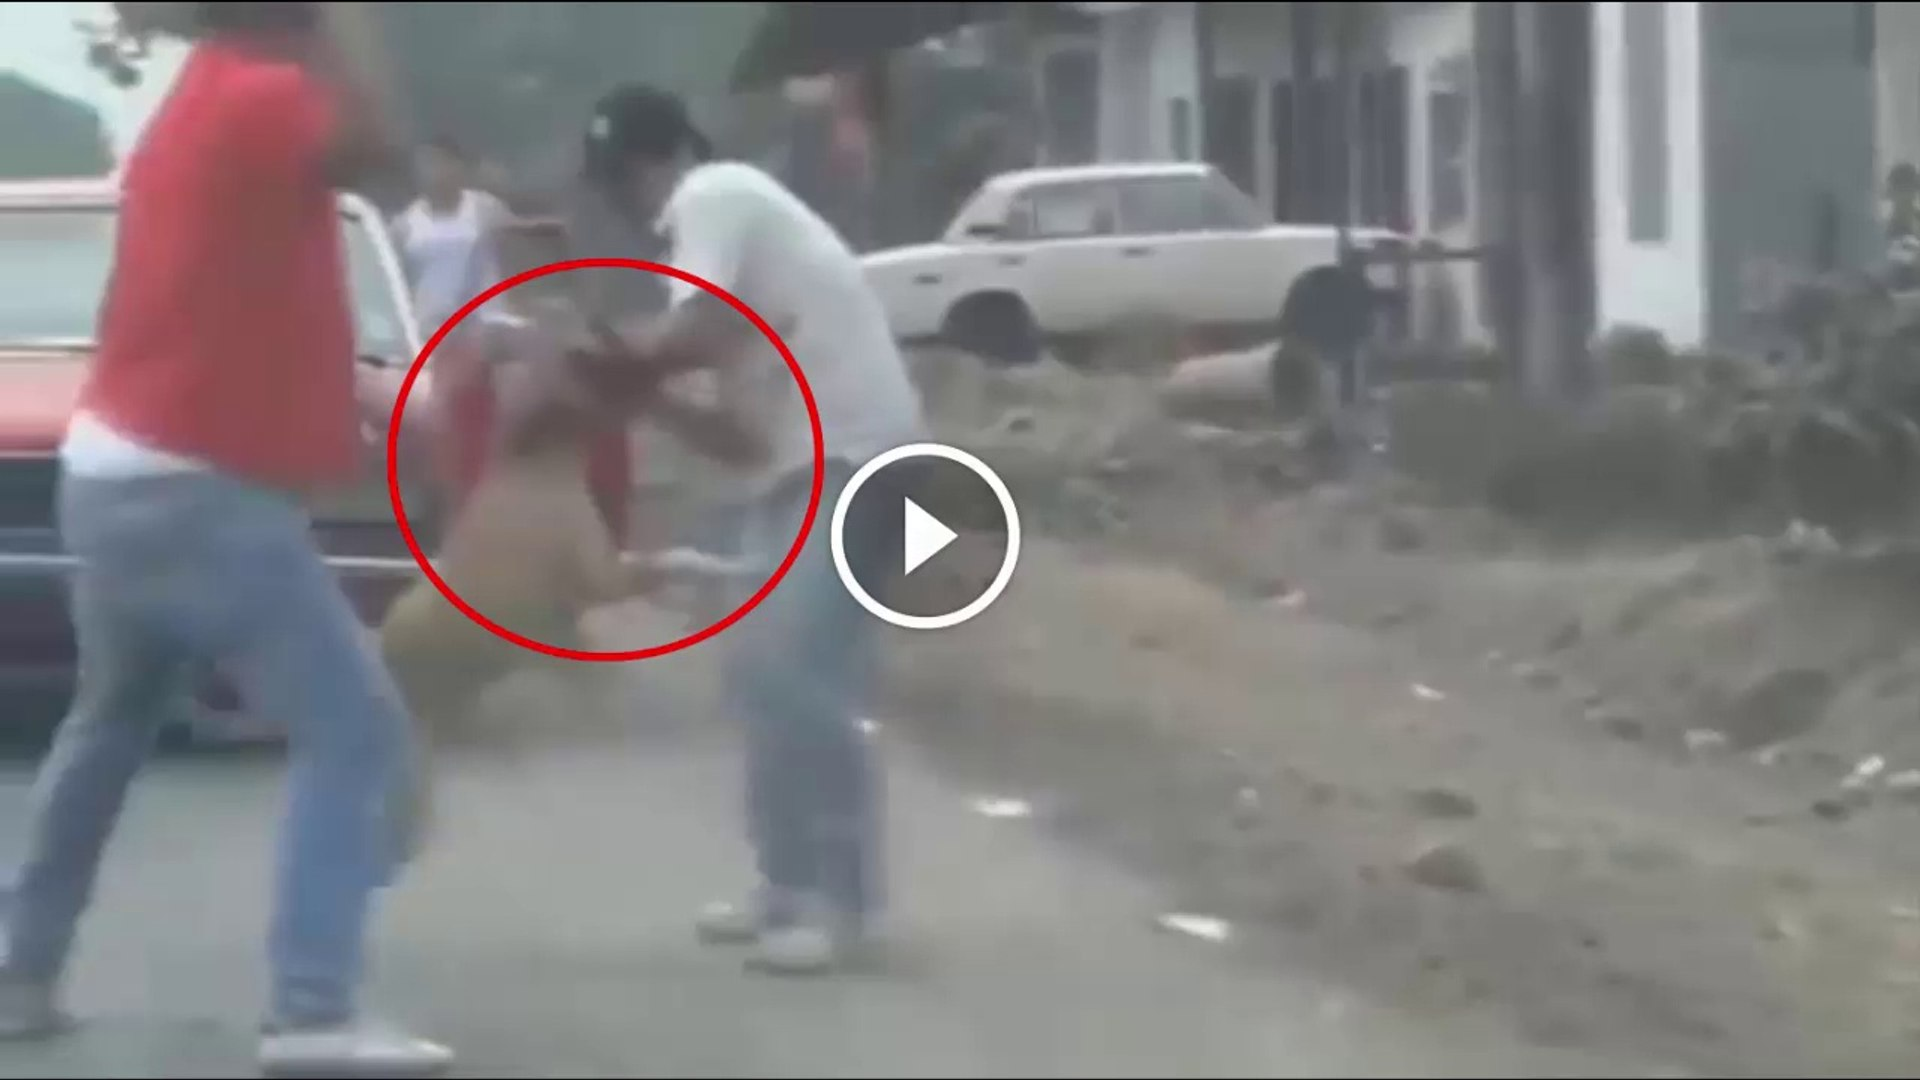 PiTBULL, ROTWEiLLER KOPEKLERiNiN SALDIRI ANLARI - PiTBULL and ROTWiLLER DOGS ATTACKiNG PEOPLE